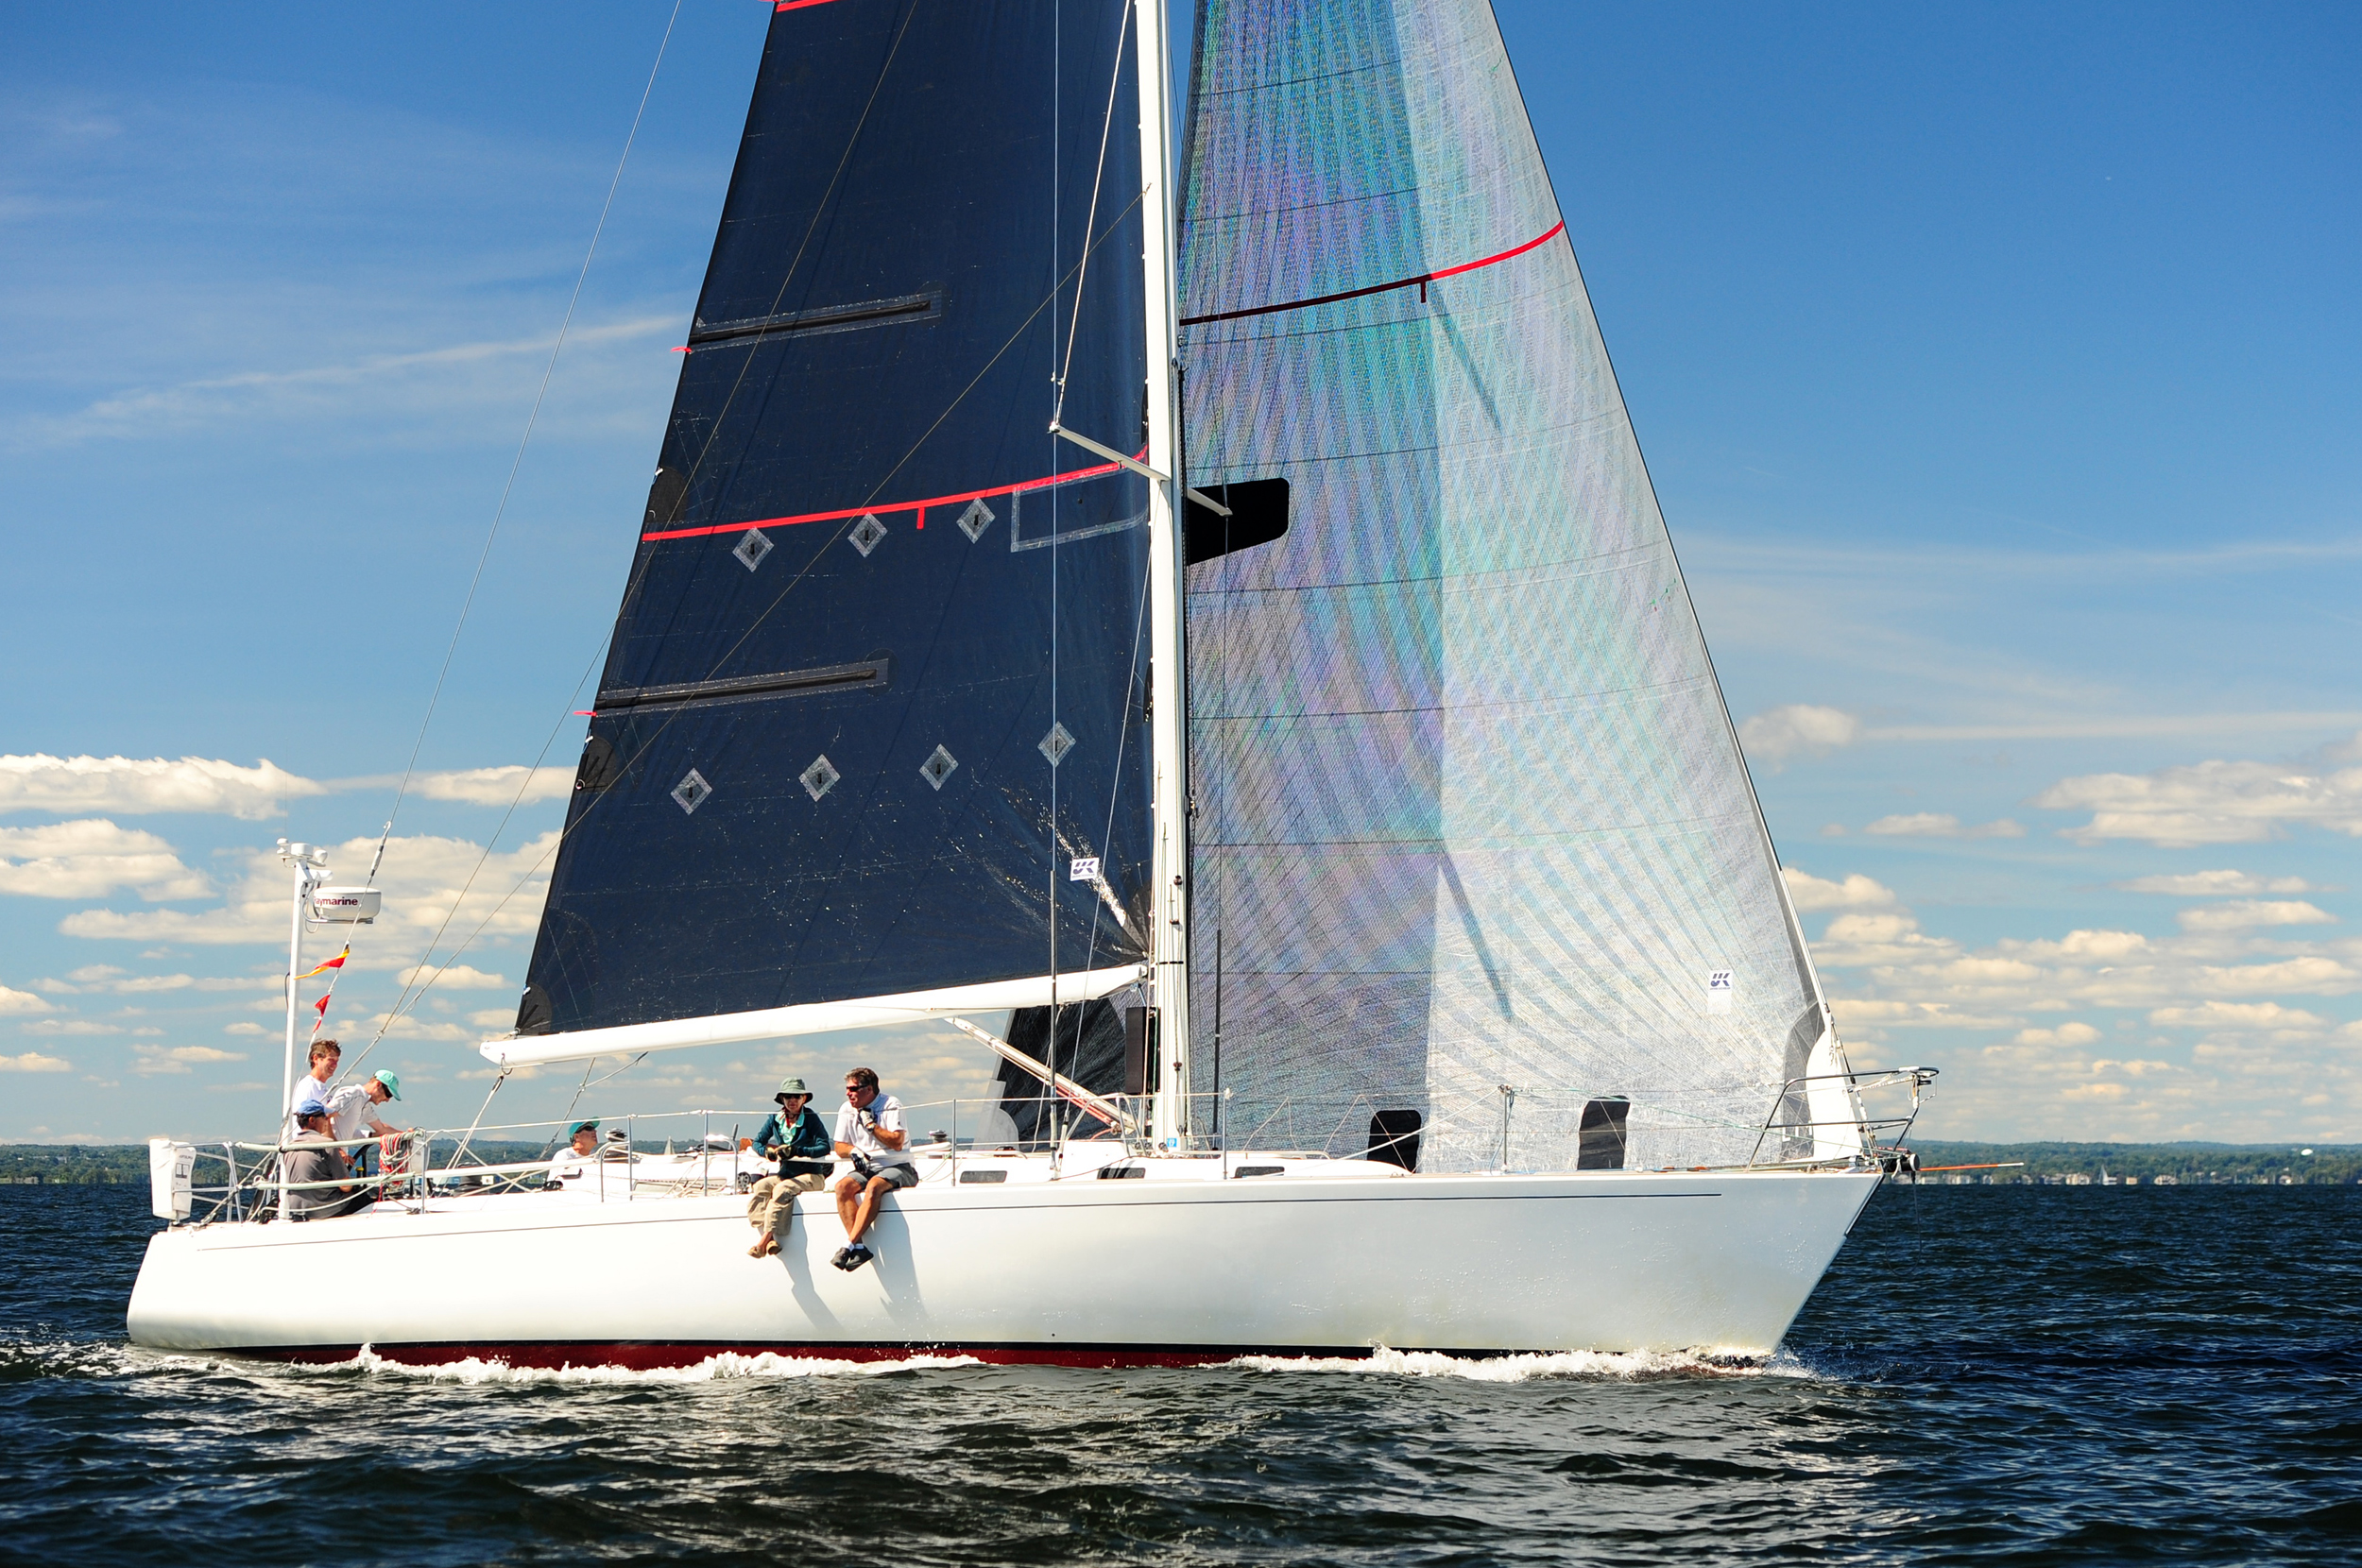 2014 Vineyard Race A 1667